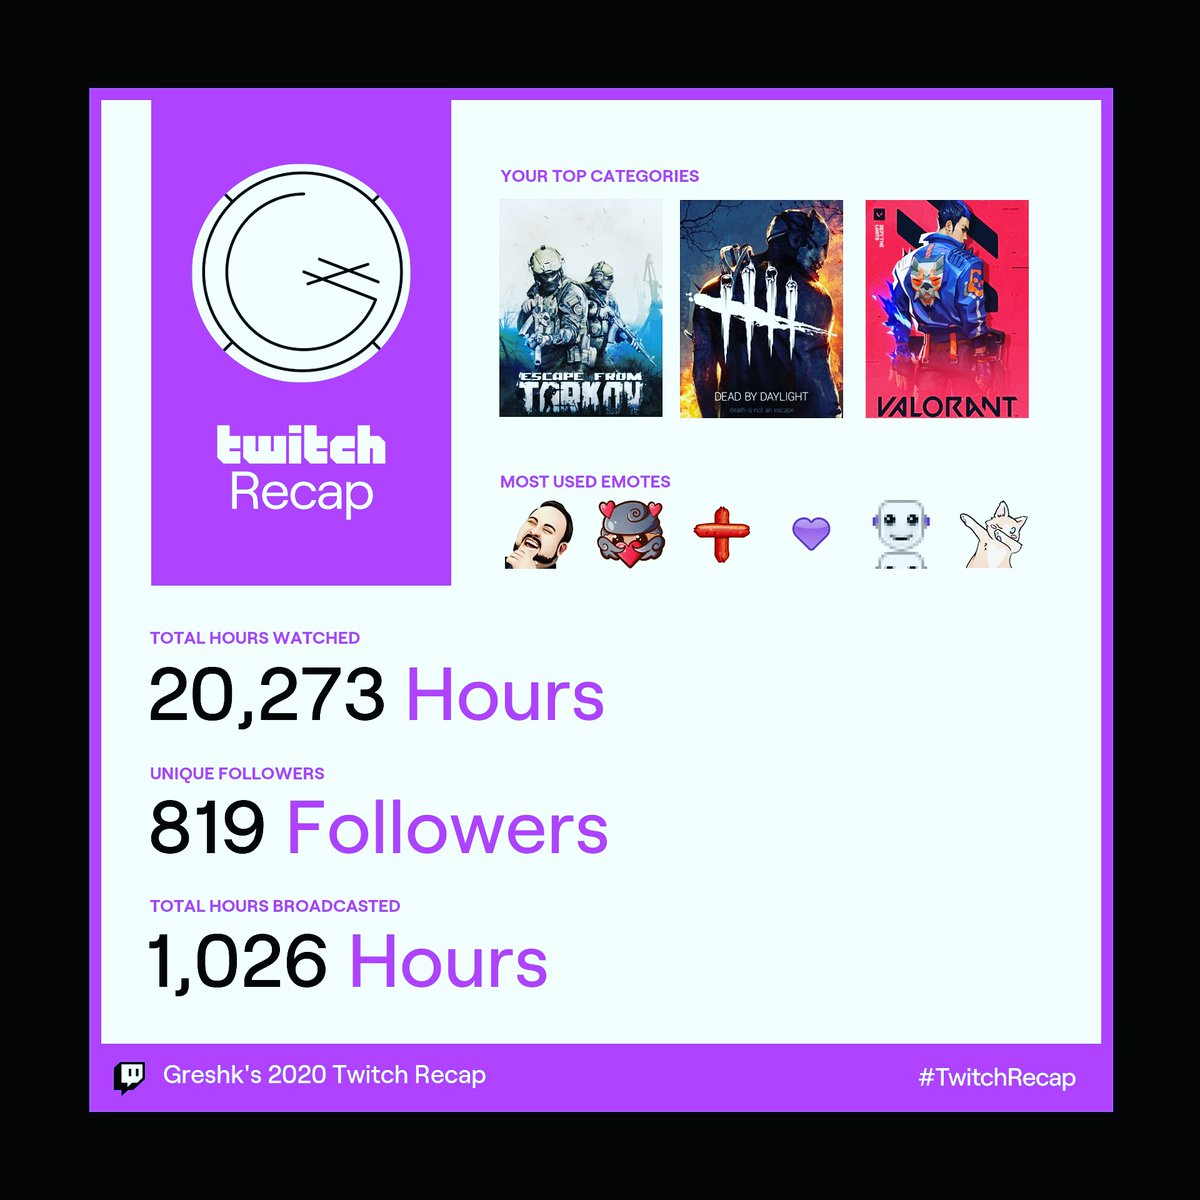 Humbled, blessed, shook, loved, thanful. 2020 was kind to me in as many ways as it sucked. 2021 is about to be my year. I'm about to achieve some big things.  #thankyou  . . . . #MentalHealthAwareness #bipolarawareness #bipolar #grindmode #twitch #twitchaffiliate #contentcreator